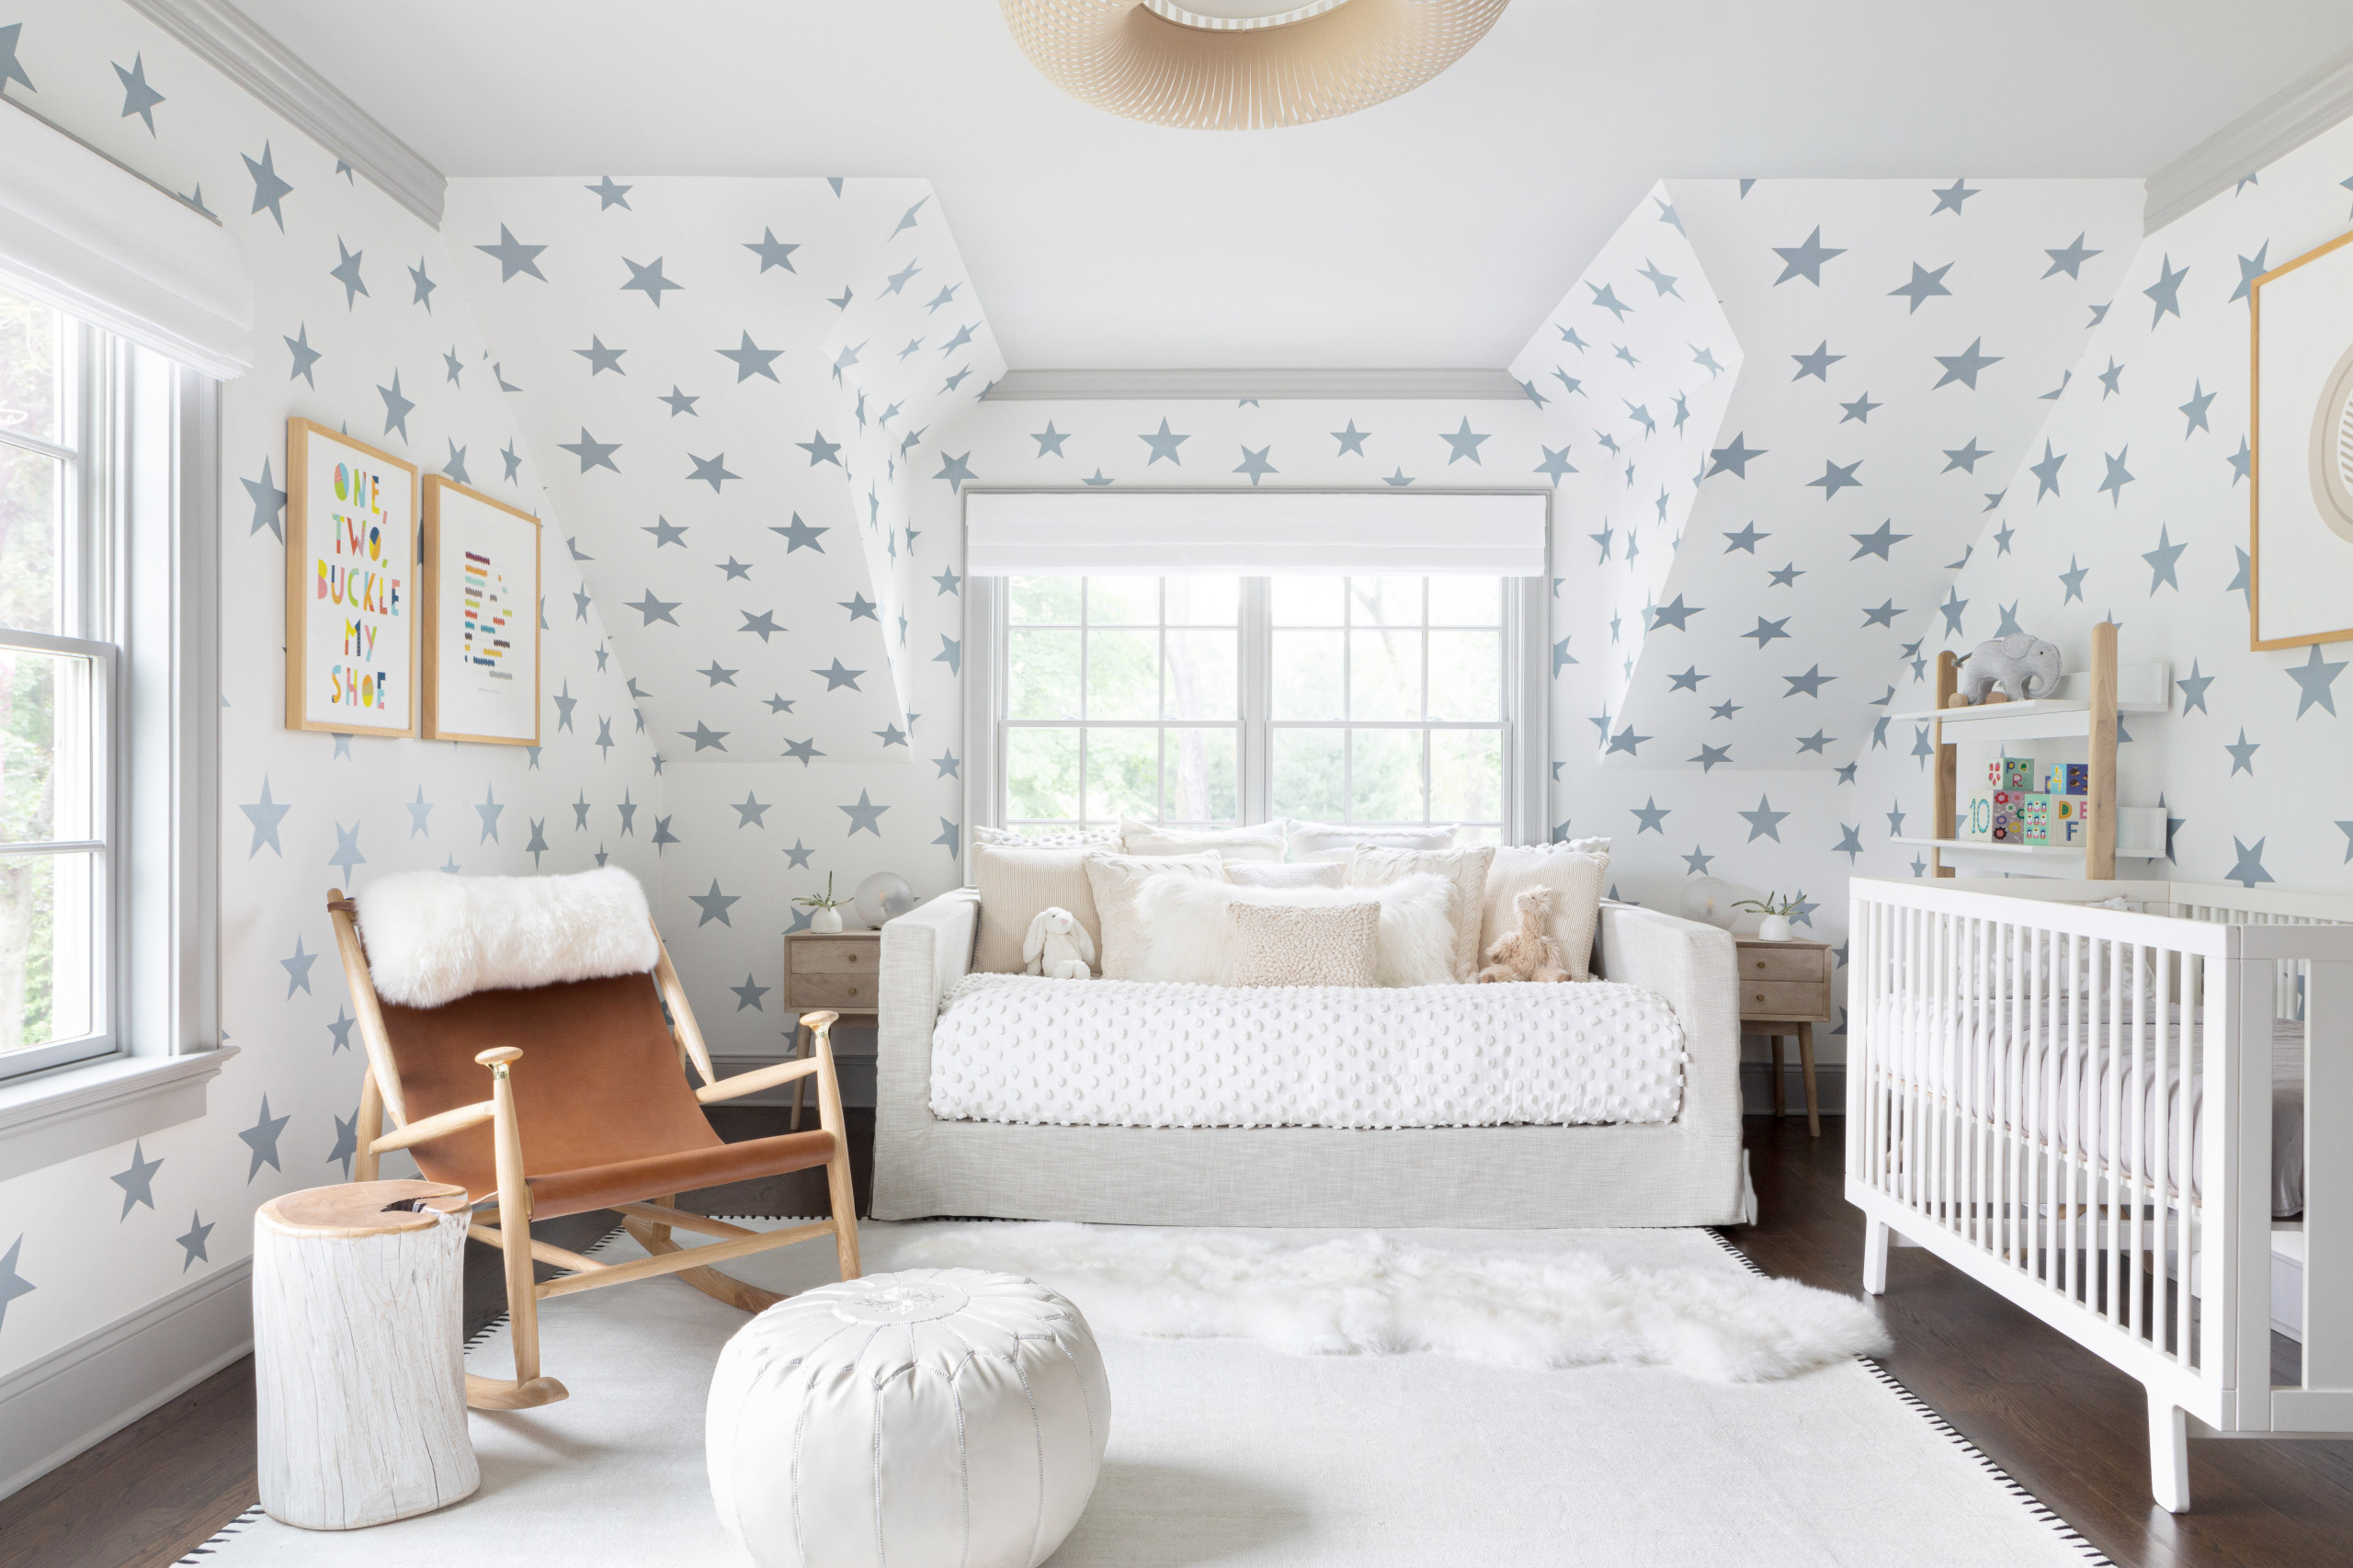 Contemporary-nursery-of-New-York-home-with-a-unique-star-filled-backdrop-97328